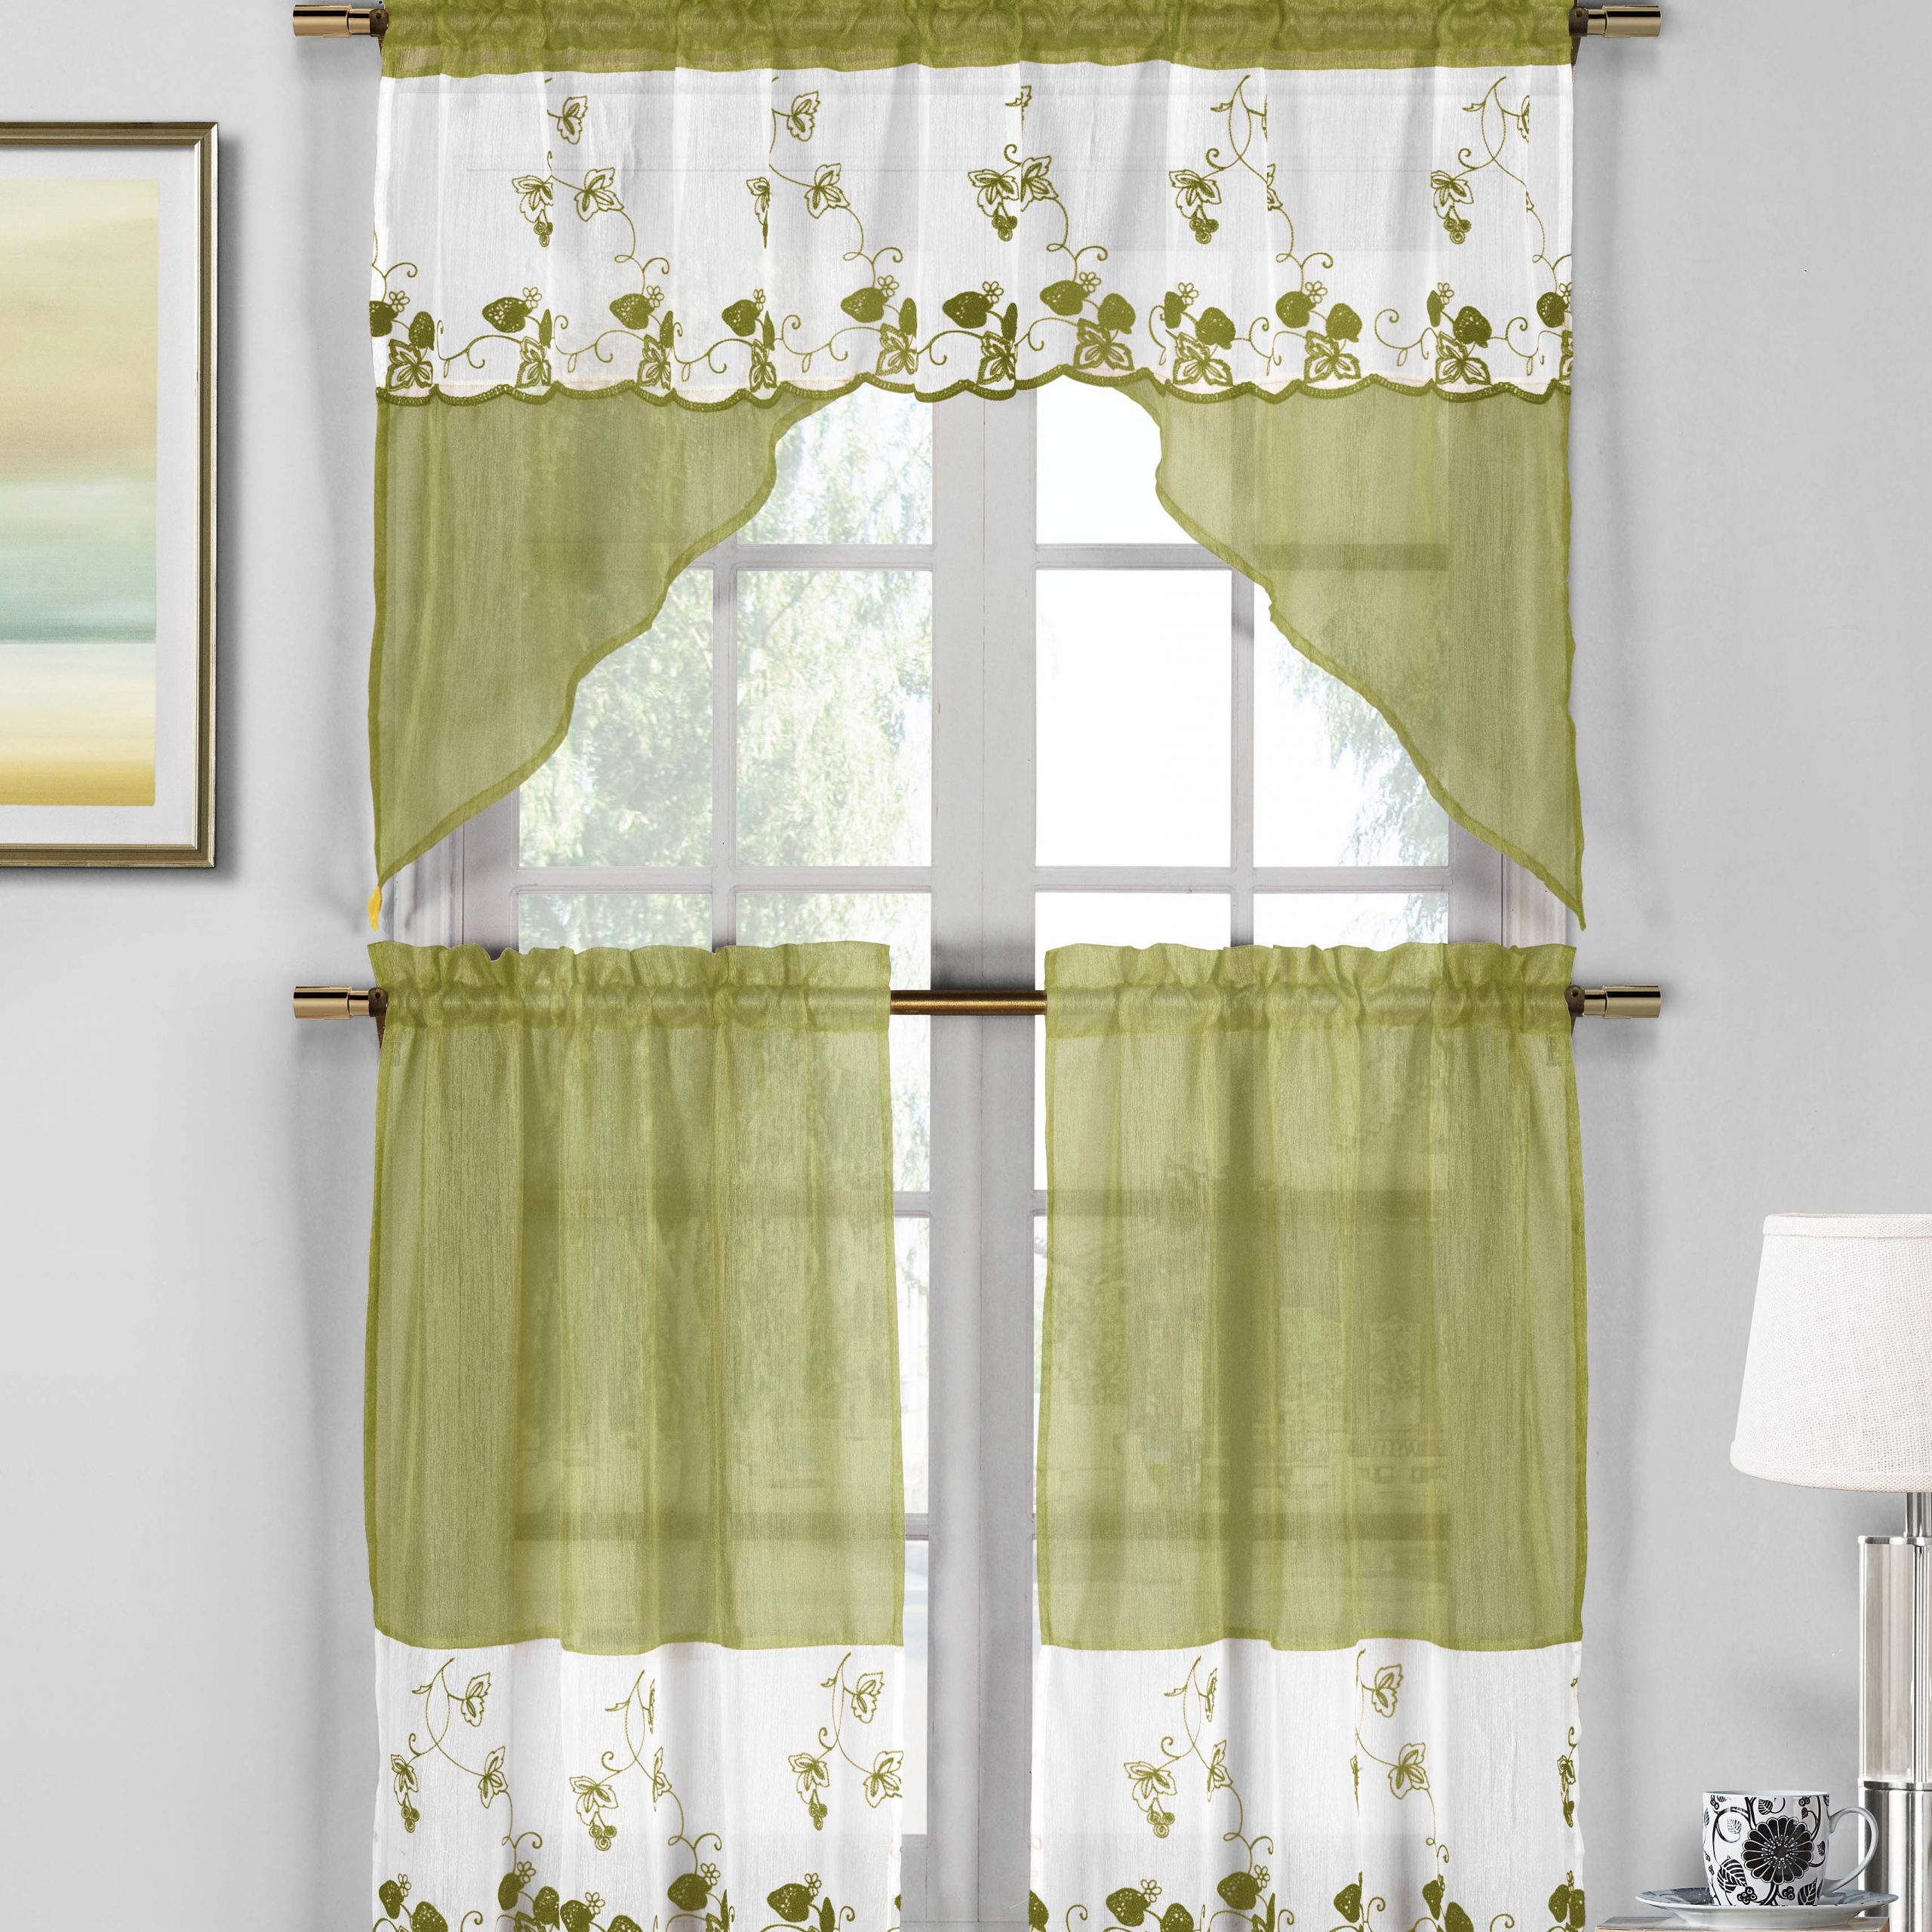 3 Piece Sage Green And White Sheer Window Curtain Set: Strawberry Field  Embroidery, 2 Tiers, 1 Swag Valance – Walmart Inside Abby Embroidered 5 Piece Curtain Tier And Swag Sets (Image 1 of 20)